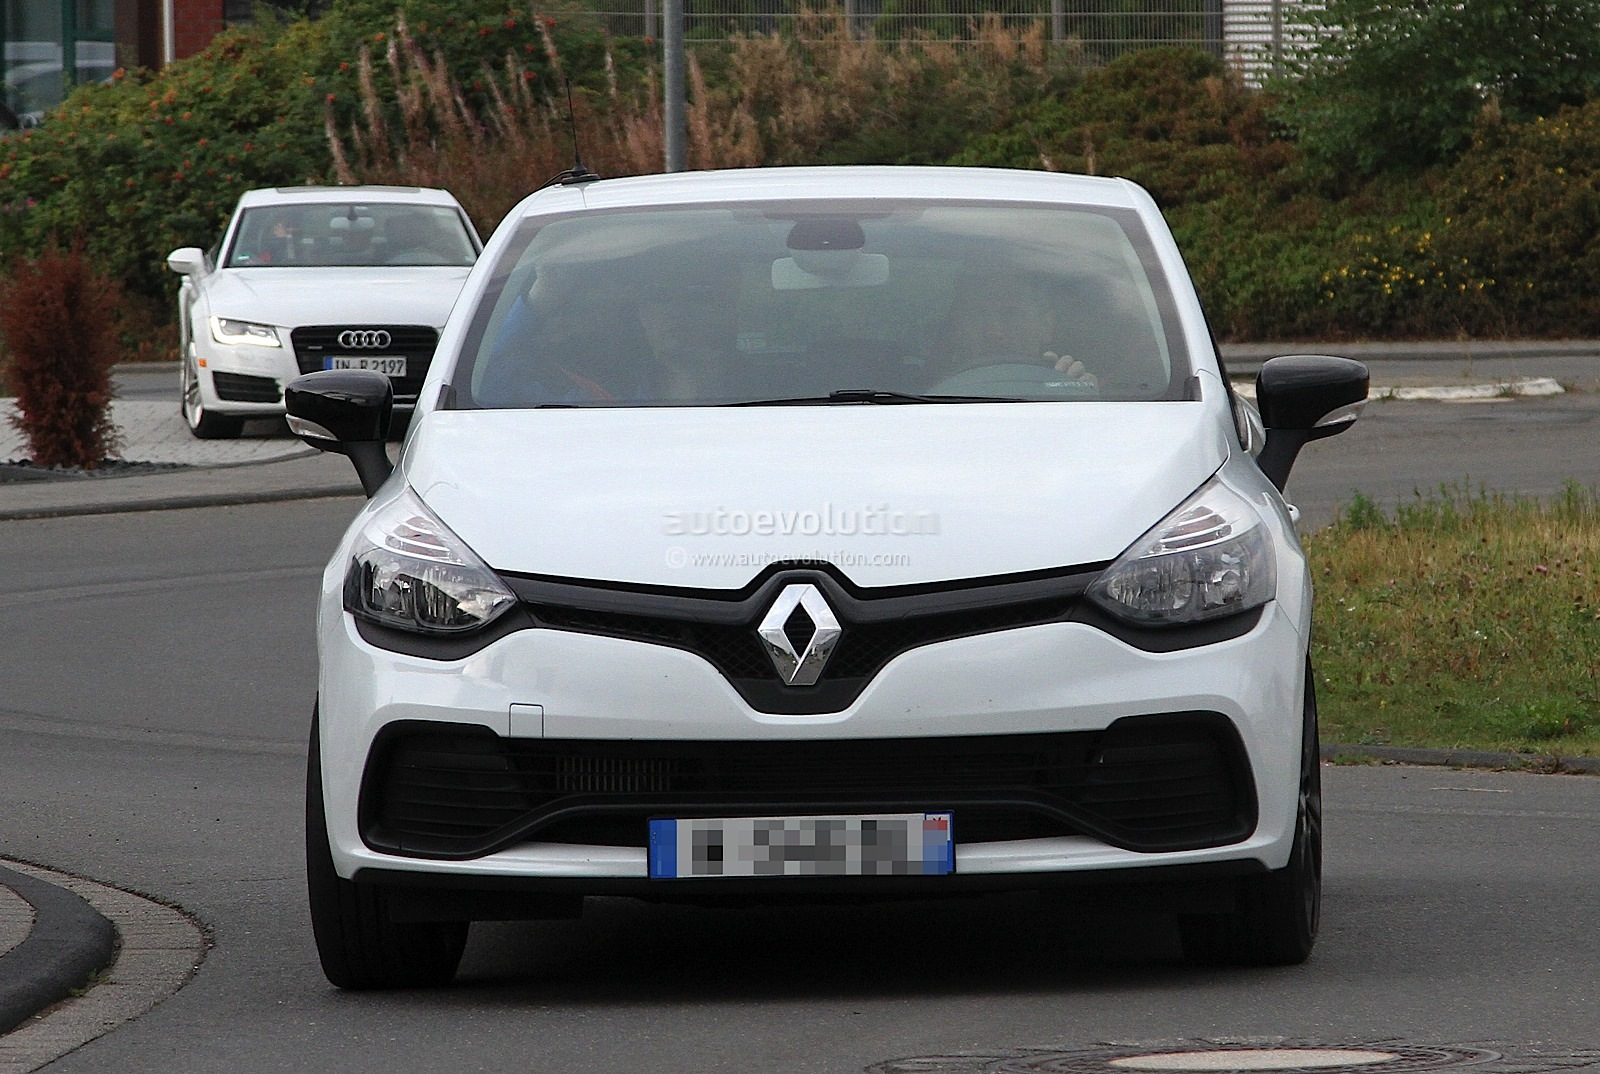 2013 renault clio iv rs 210 spotted undisguised in white. Black Bedroom Furniture Sets. Home Design Ideas